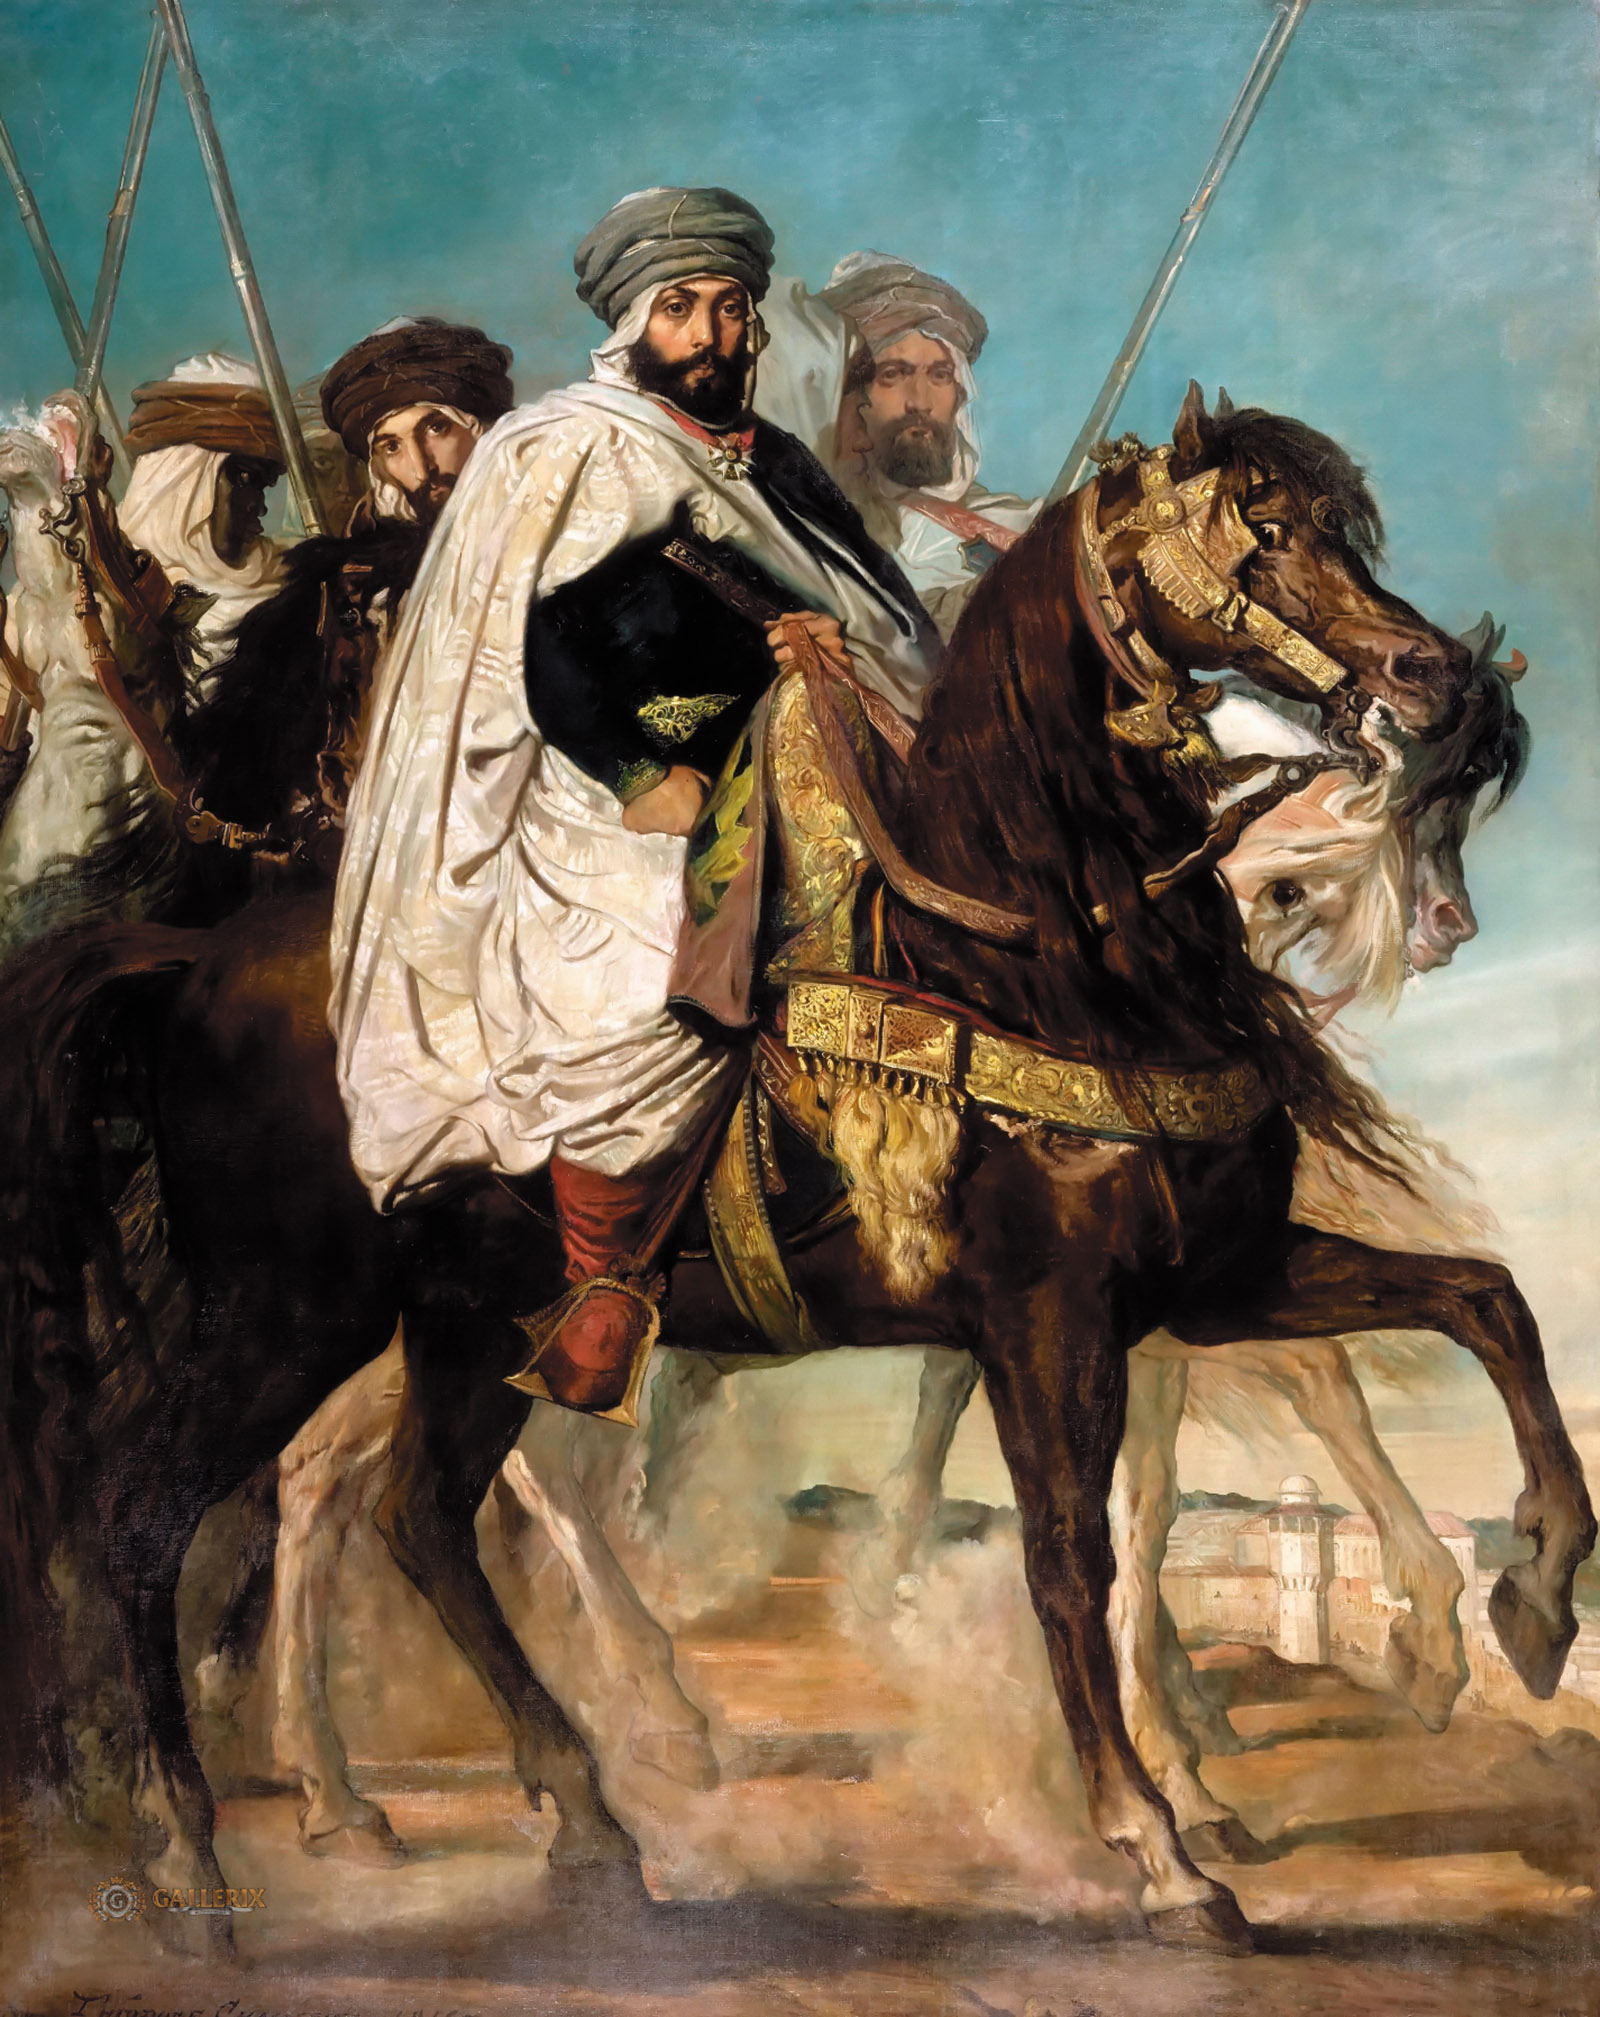 Théodore Chassériau: Caliph of Constantine Ali-Hamed Followed by His Escort, 1845